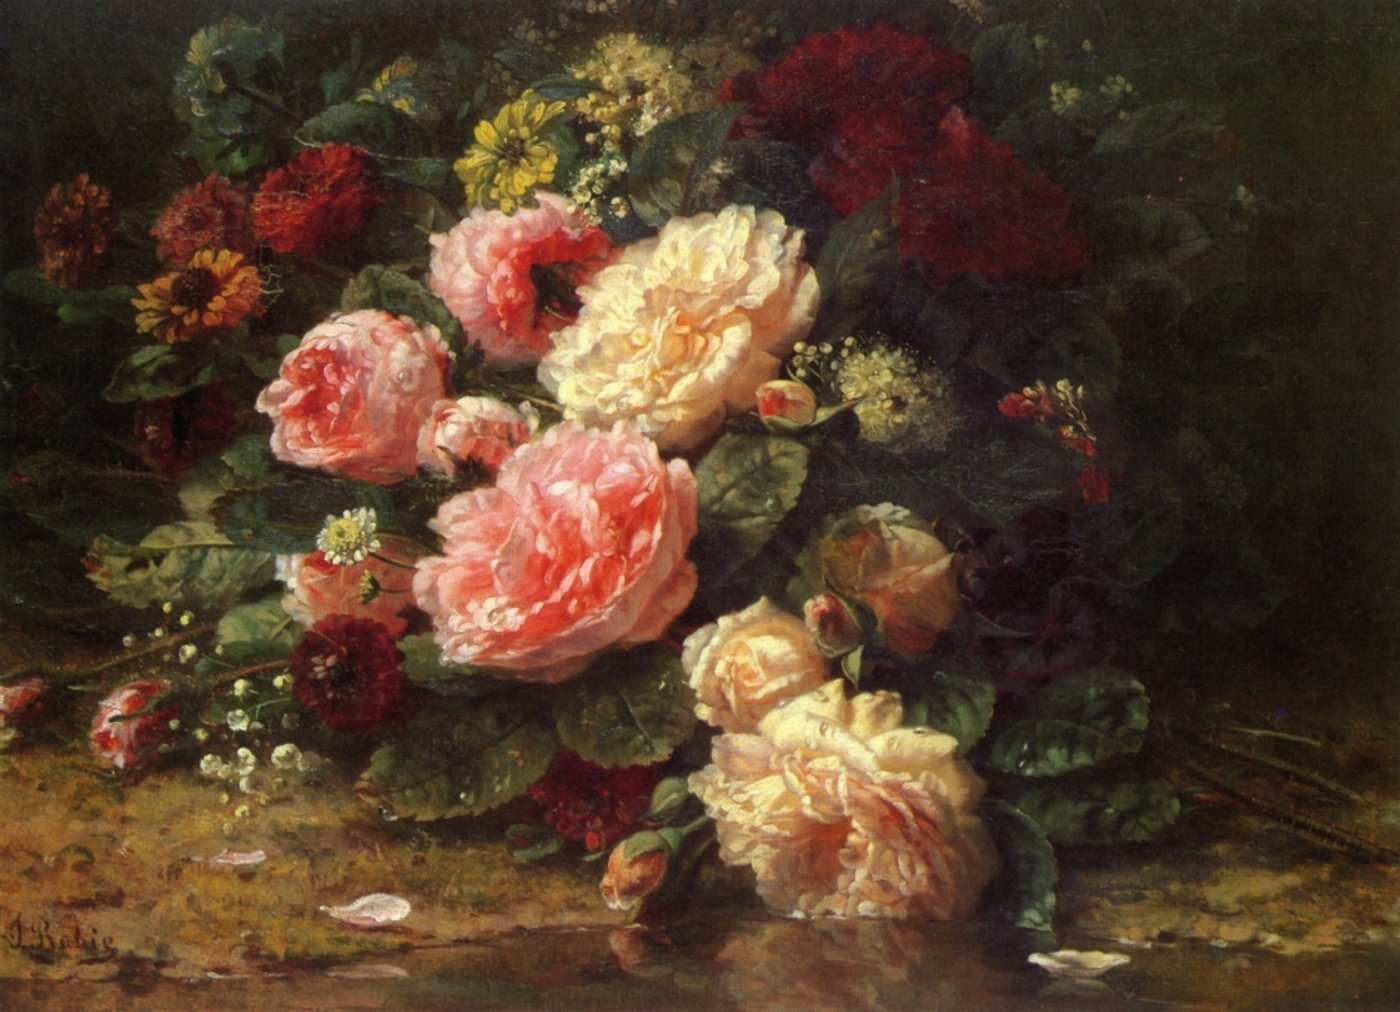 Jean-Baptiste Robie Reproductions | 1st Art Gallery